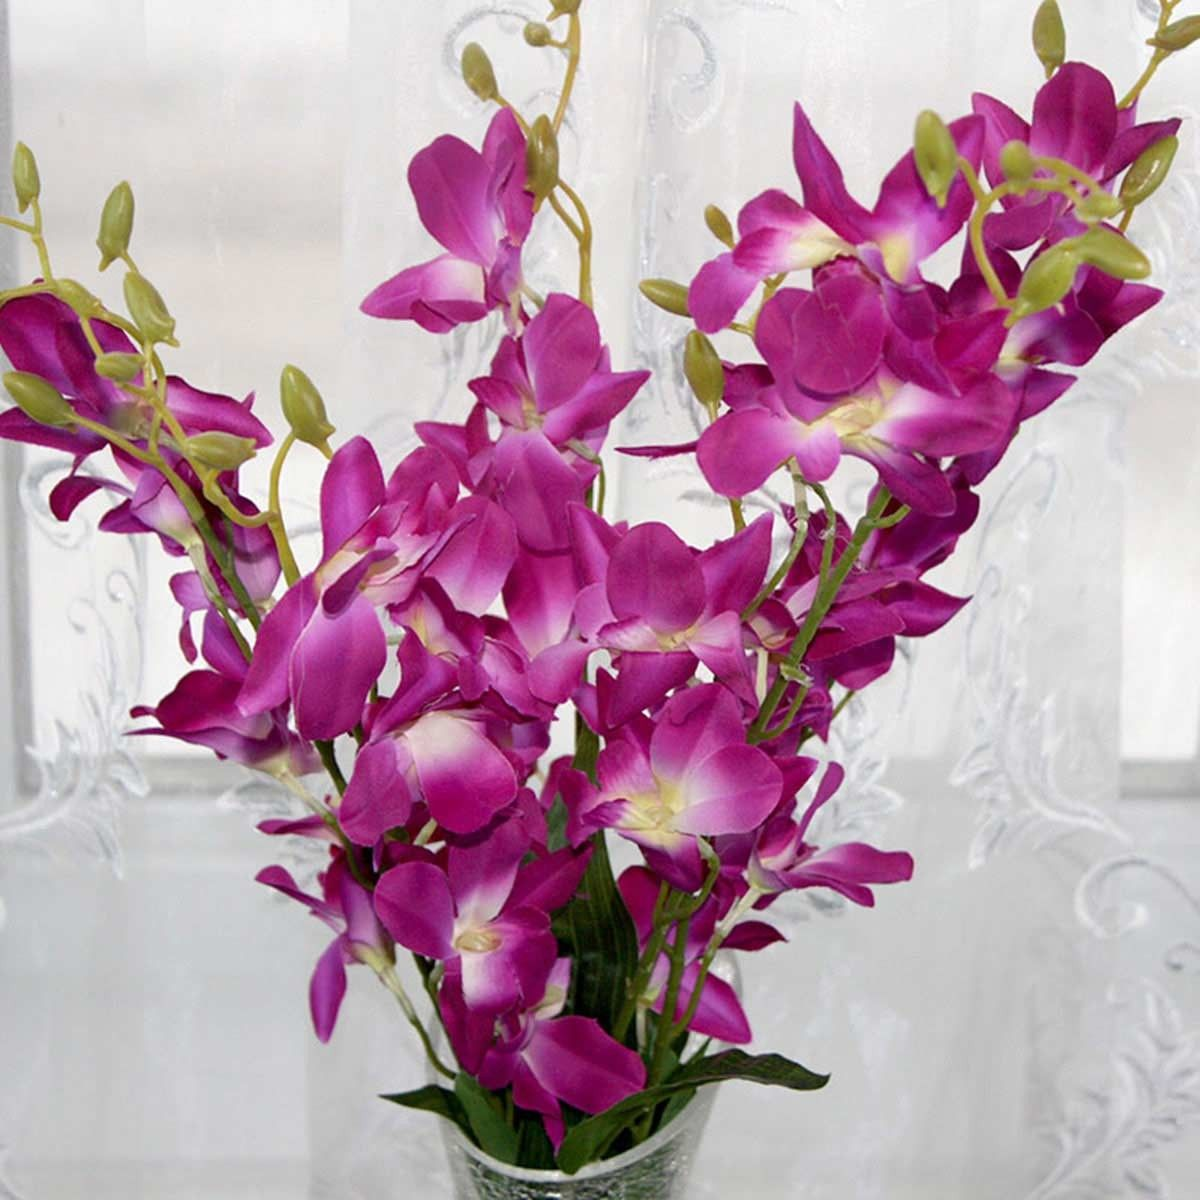 Artificial Orchid Flower/Piece - 26""